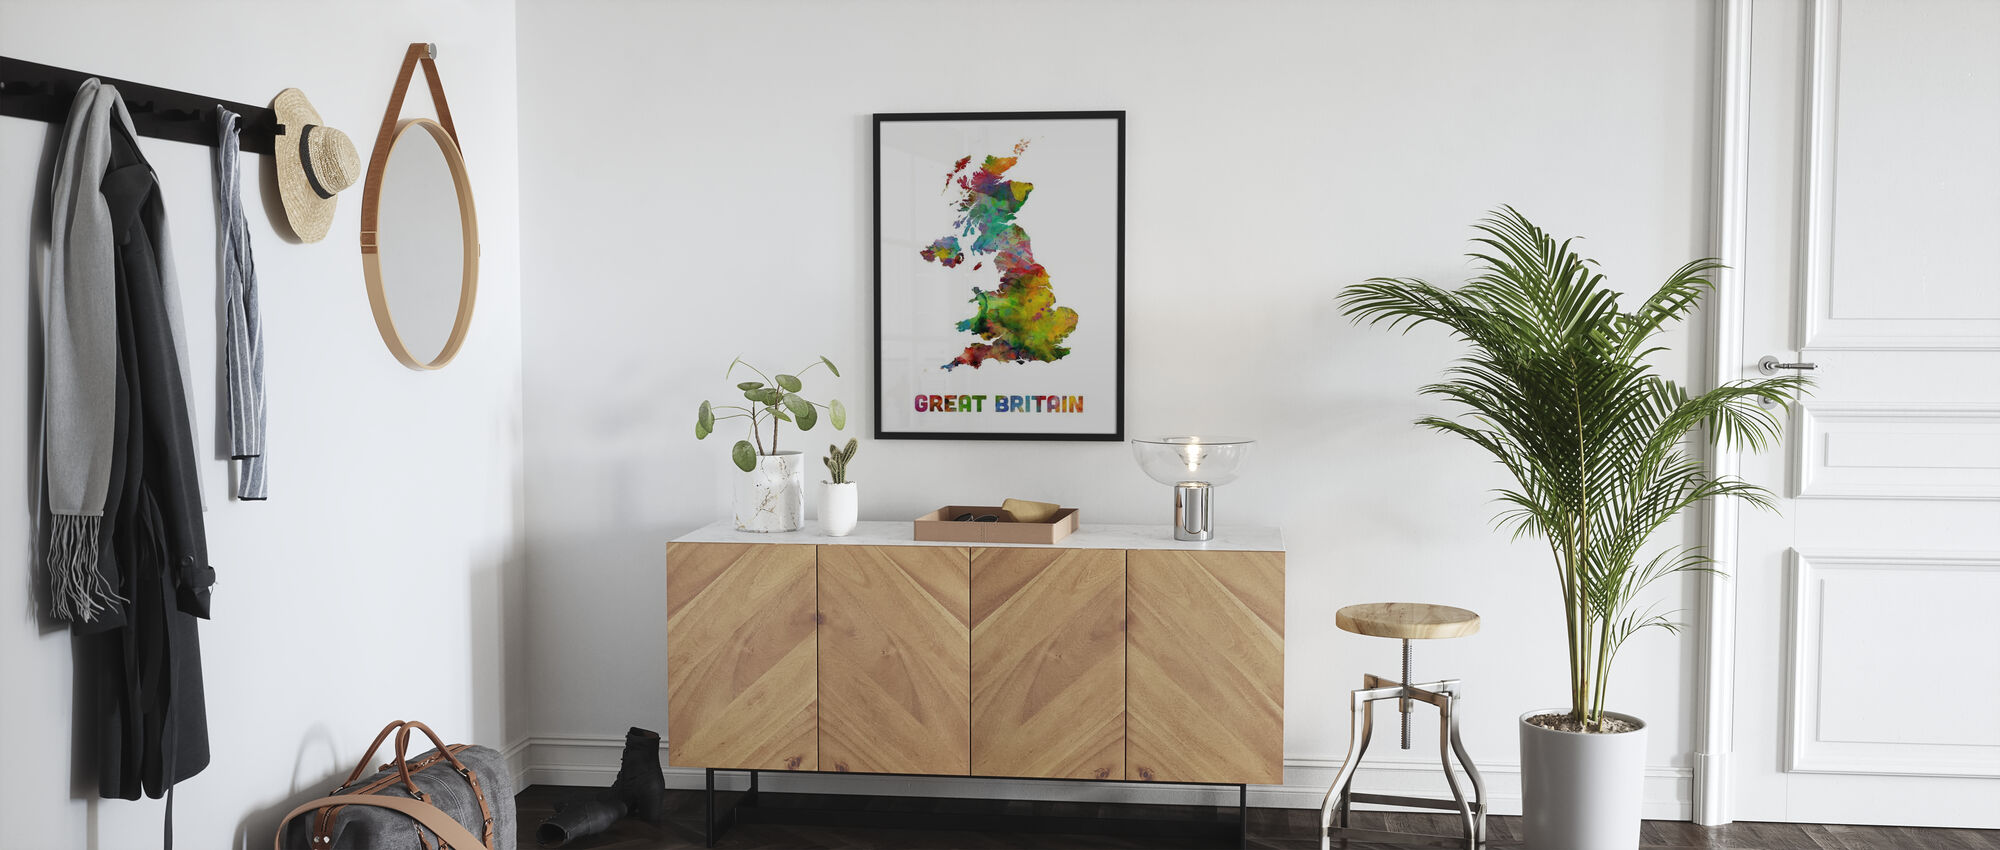 Great Britain Watercolor Map - Poster - Hallway